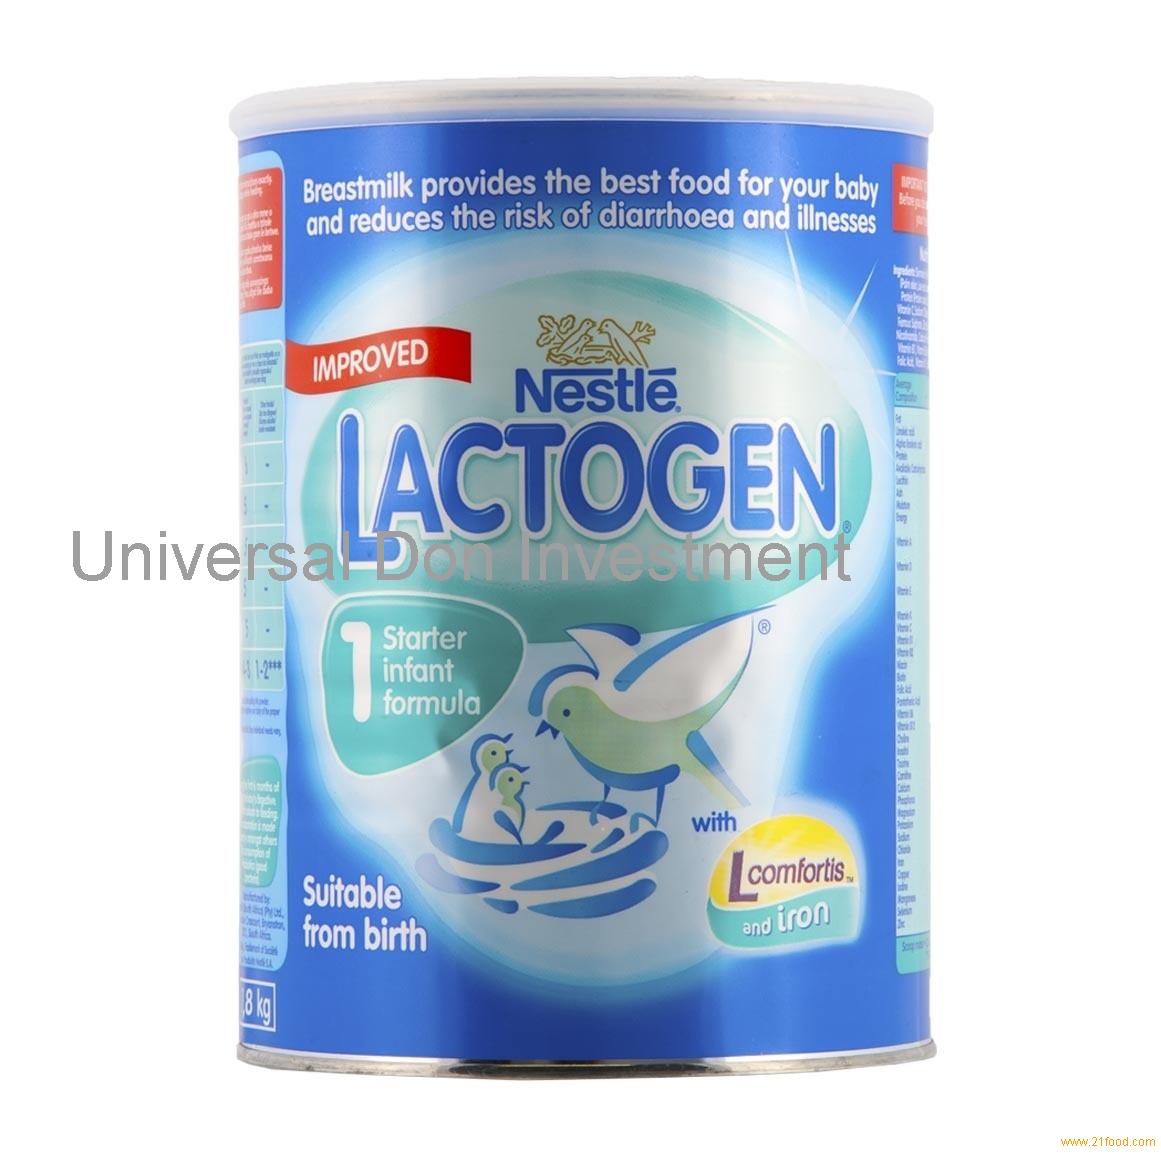 nestle marketing practices in africa Nestle is also notorious for its aggressive marketing of infant formula in poor countries in the 1980s because of this practice, nestle is still one of the most boycotted corporations in the world, and its infant formula is still controversial.